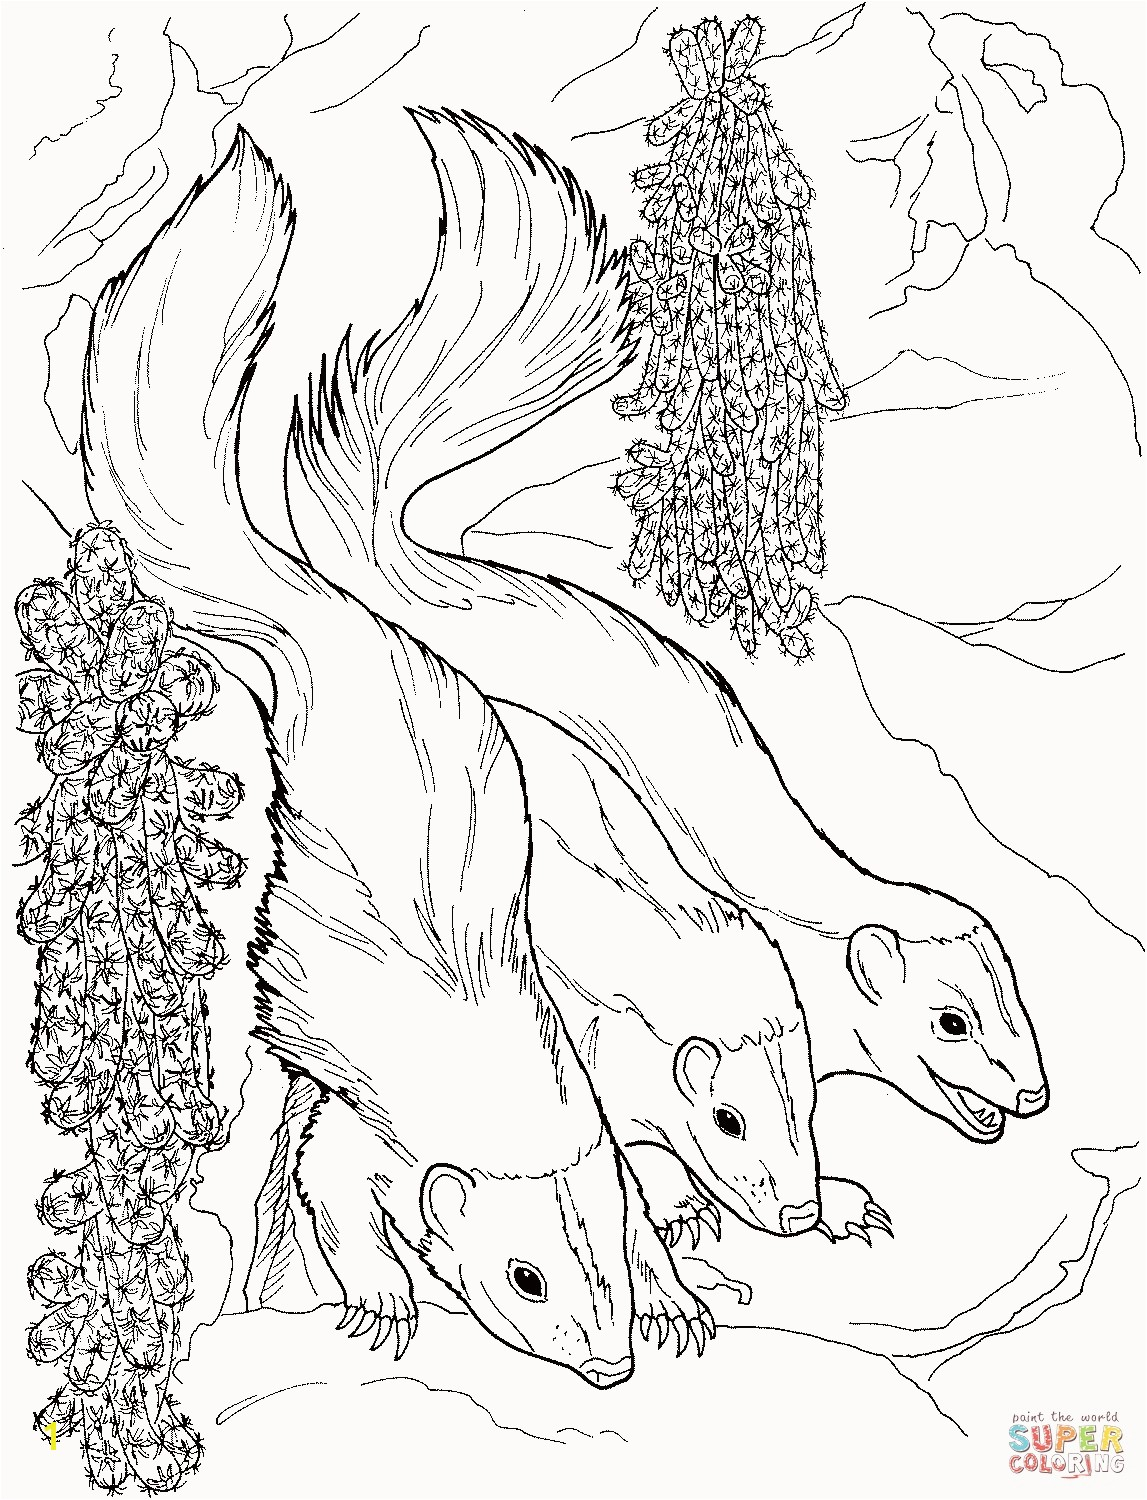 Weasel Coloring Pages Awesome Three Weasels Coloring Page Free Printable Pages Inside Mink Weasel Coloring